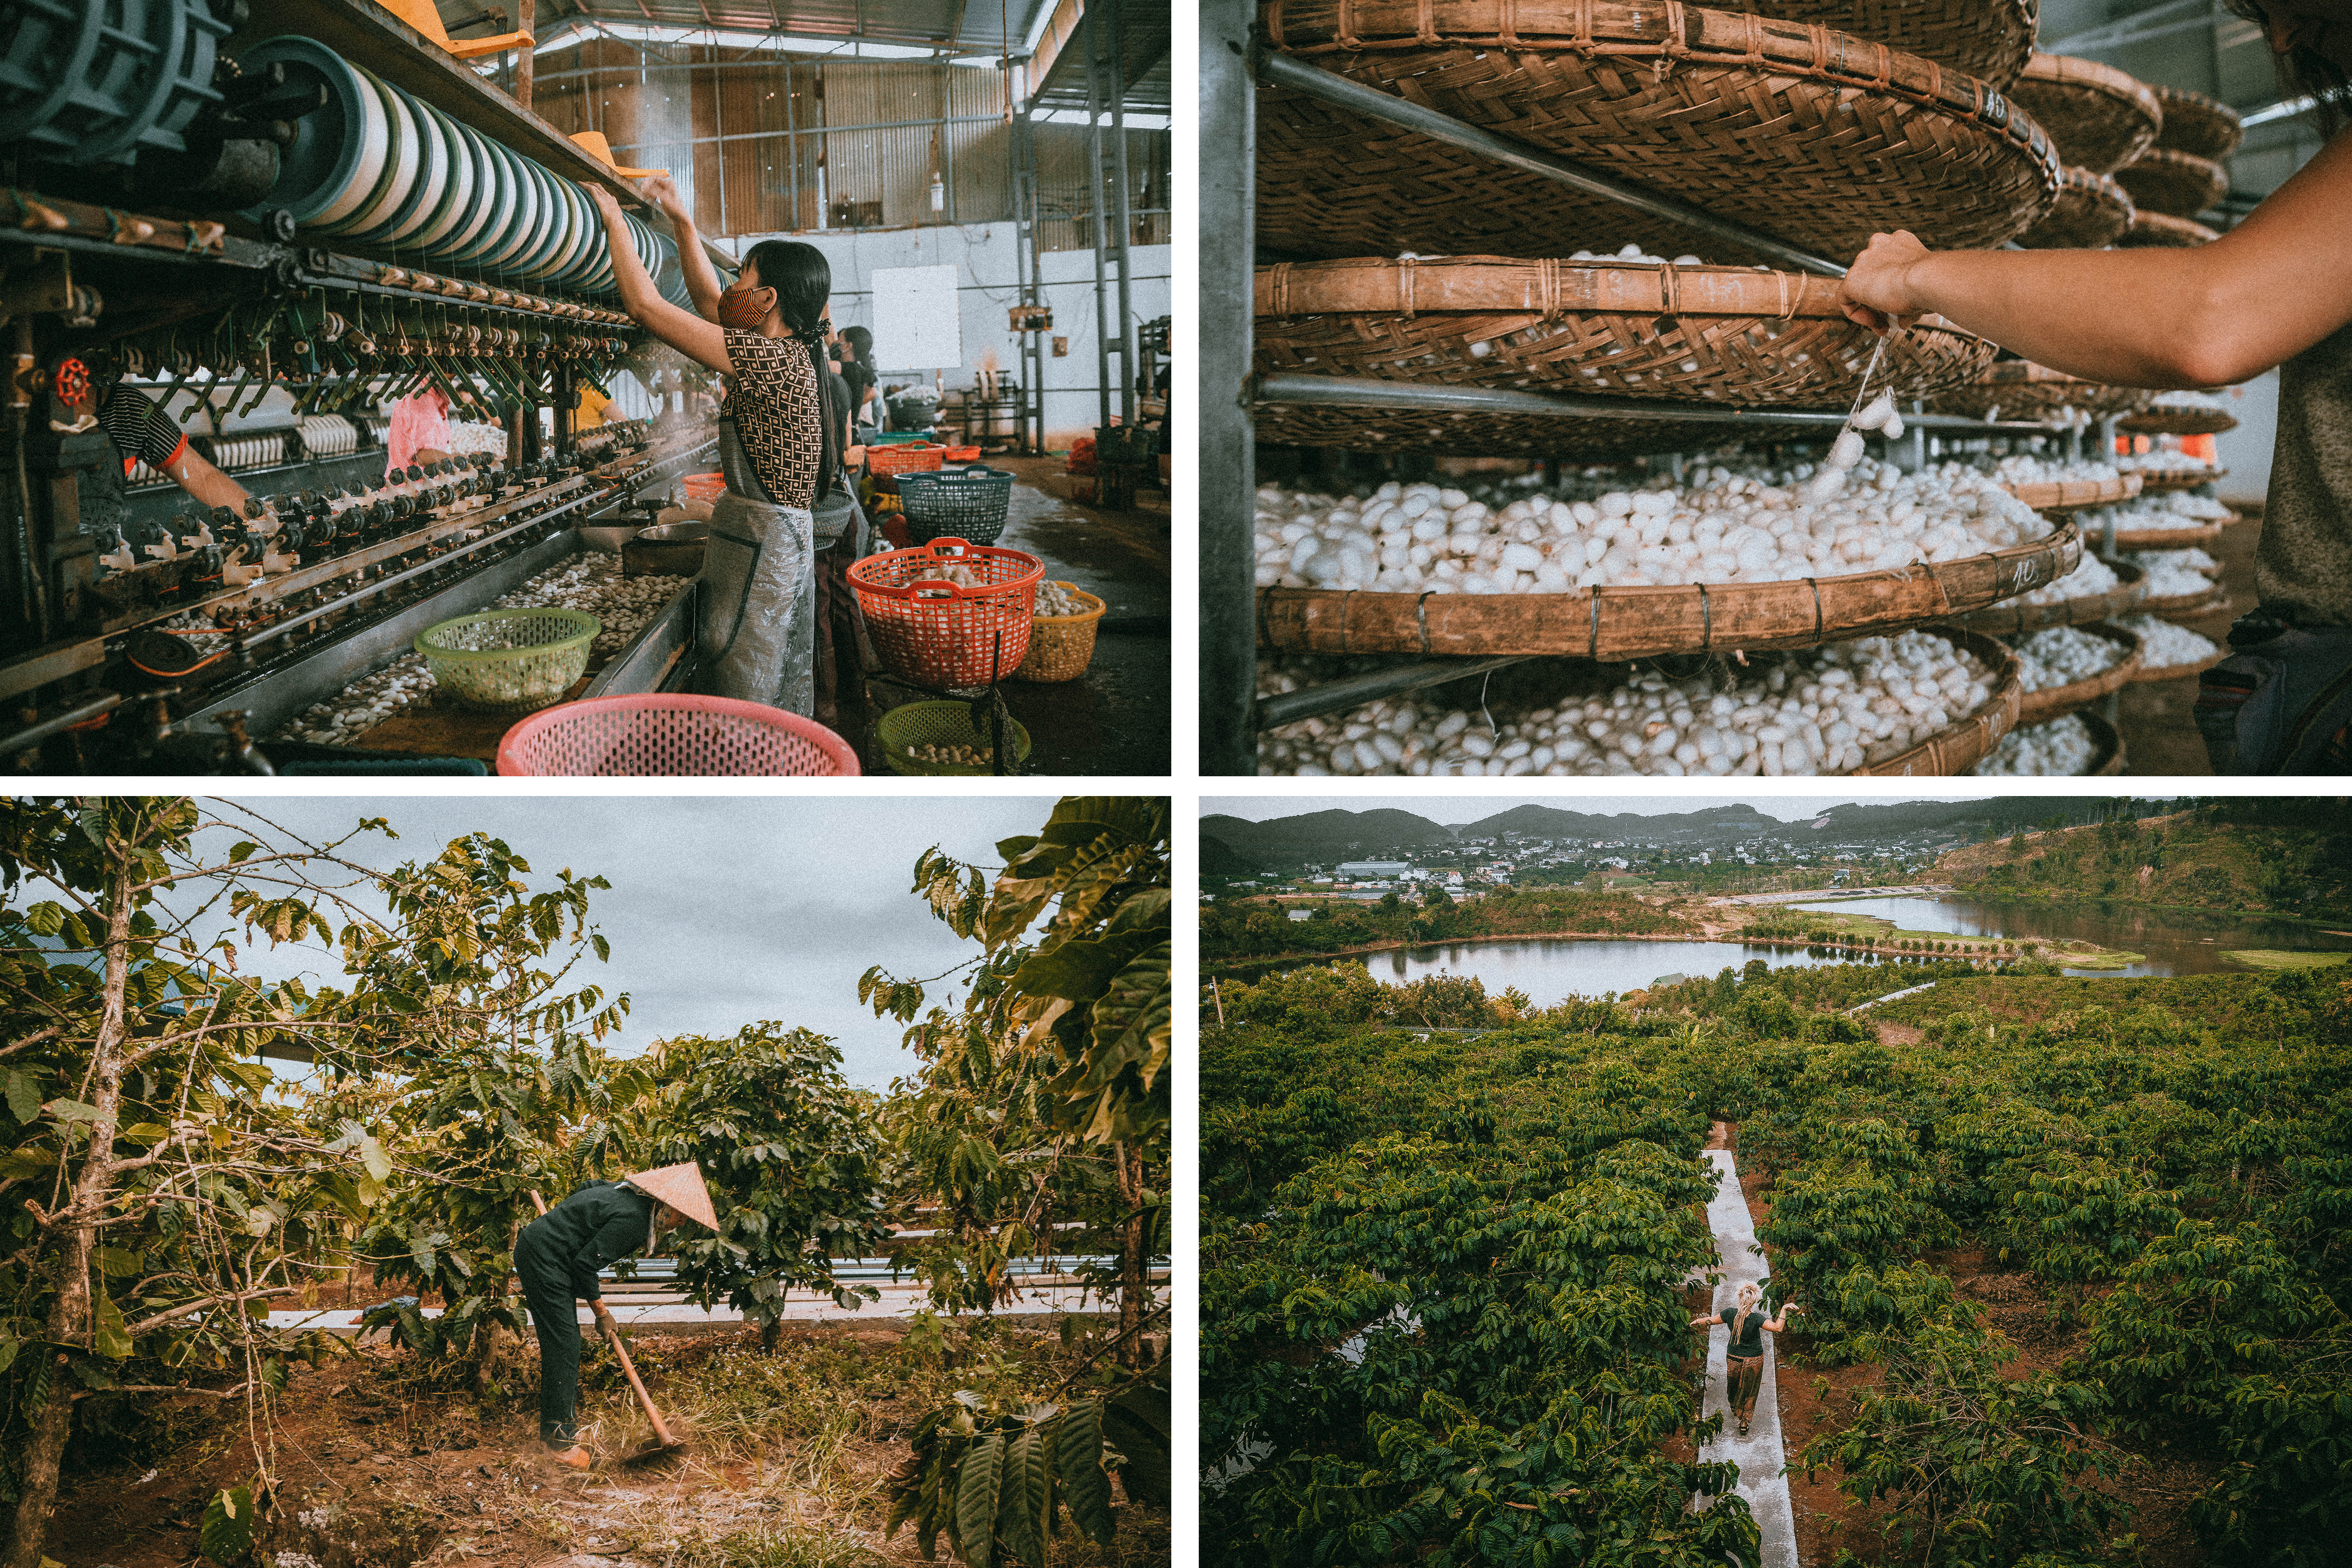 vietnam south east asia coffee plantation silk factory local people working green local culture exploring dalat